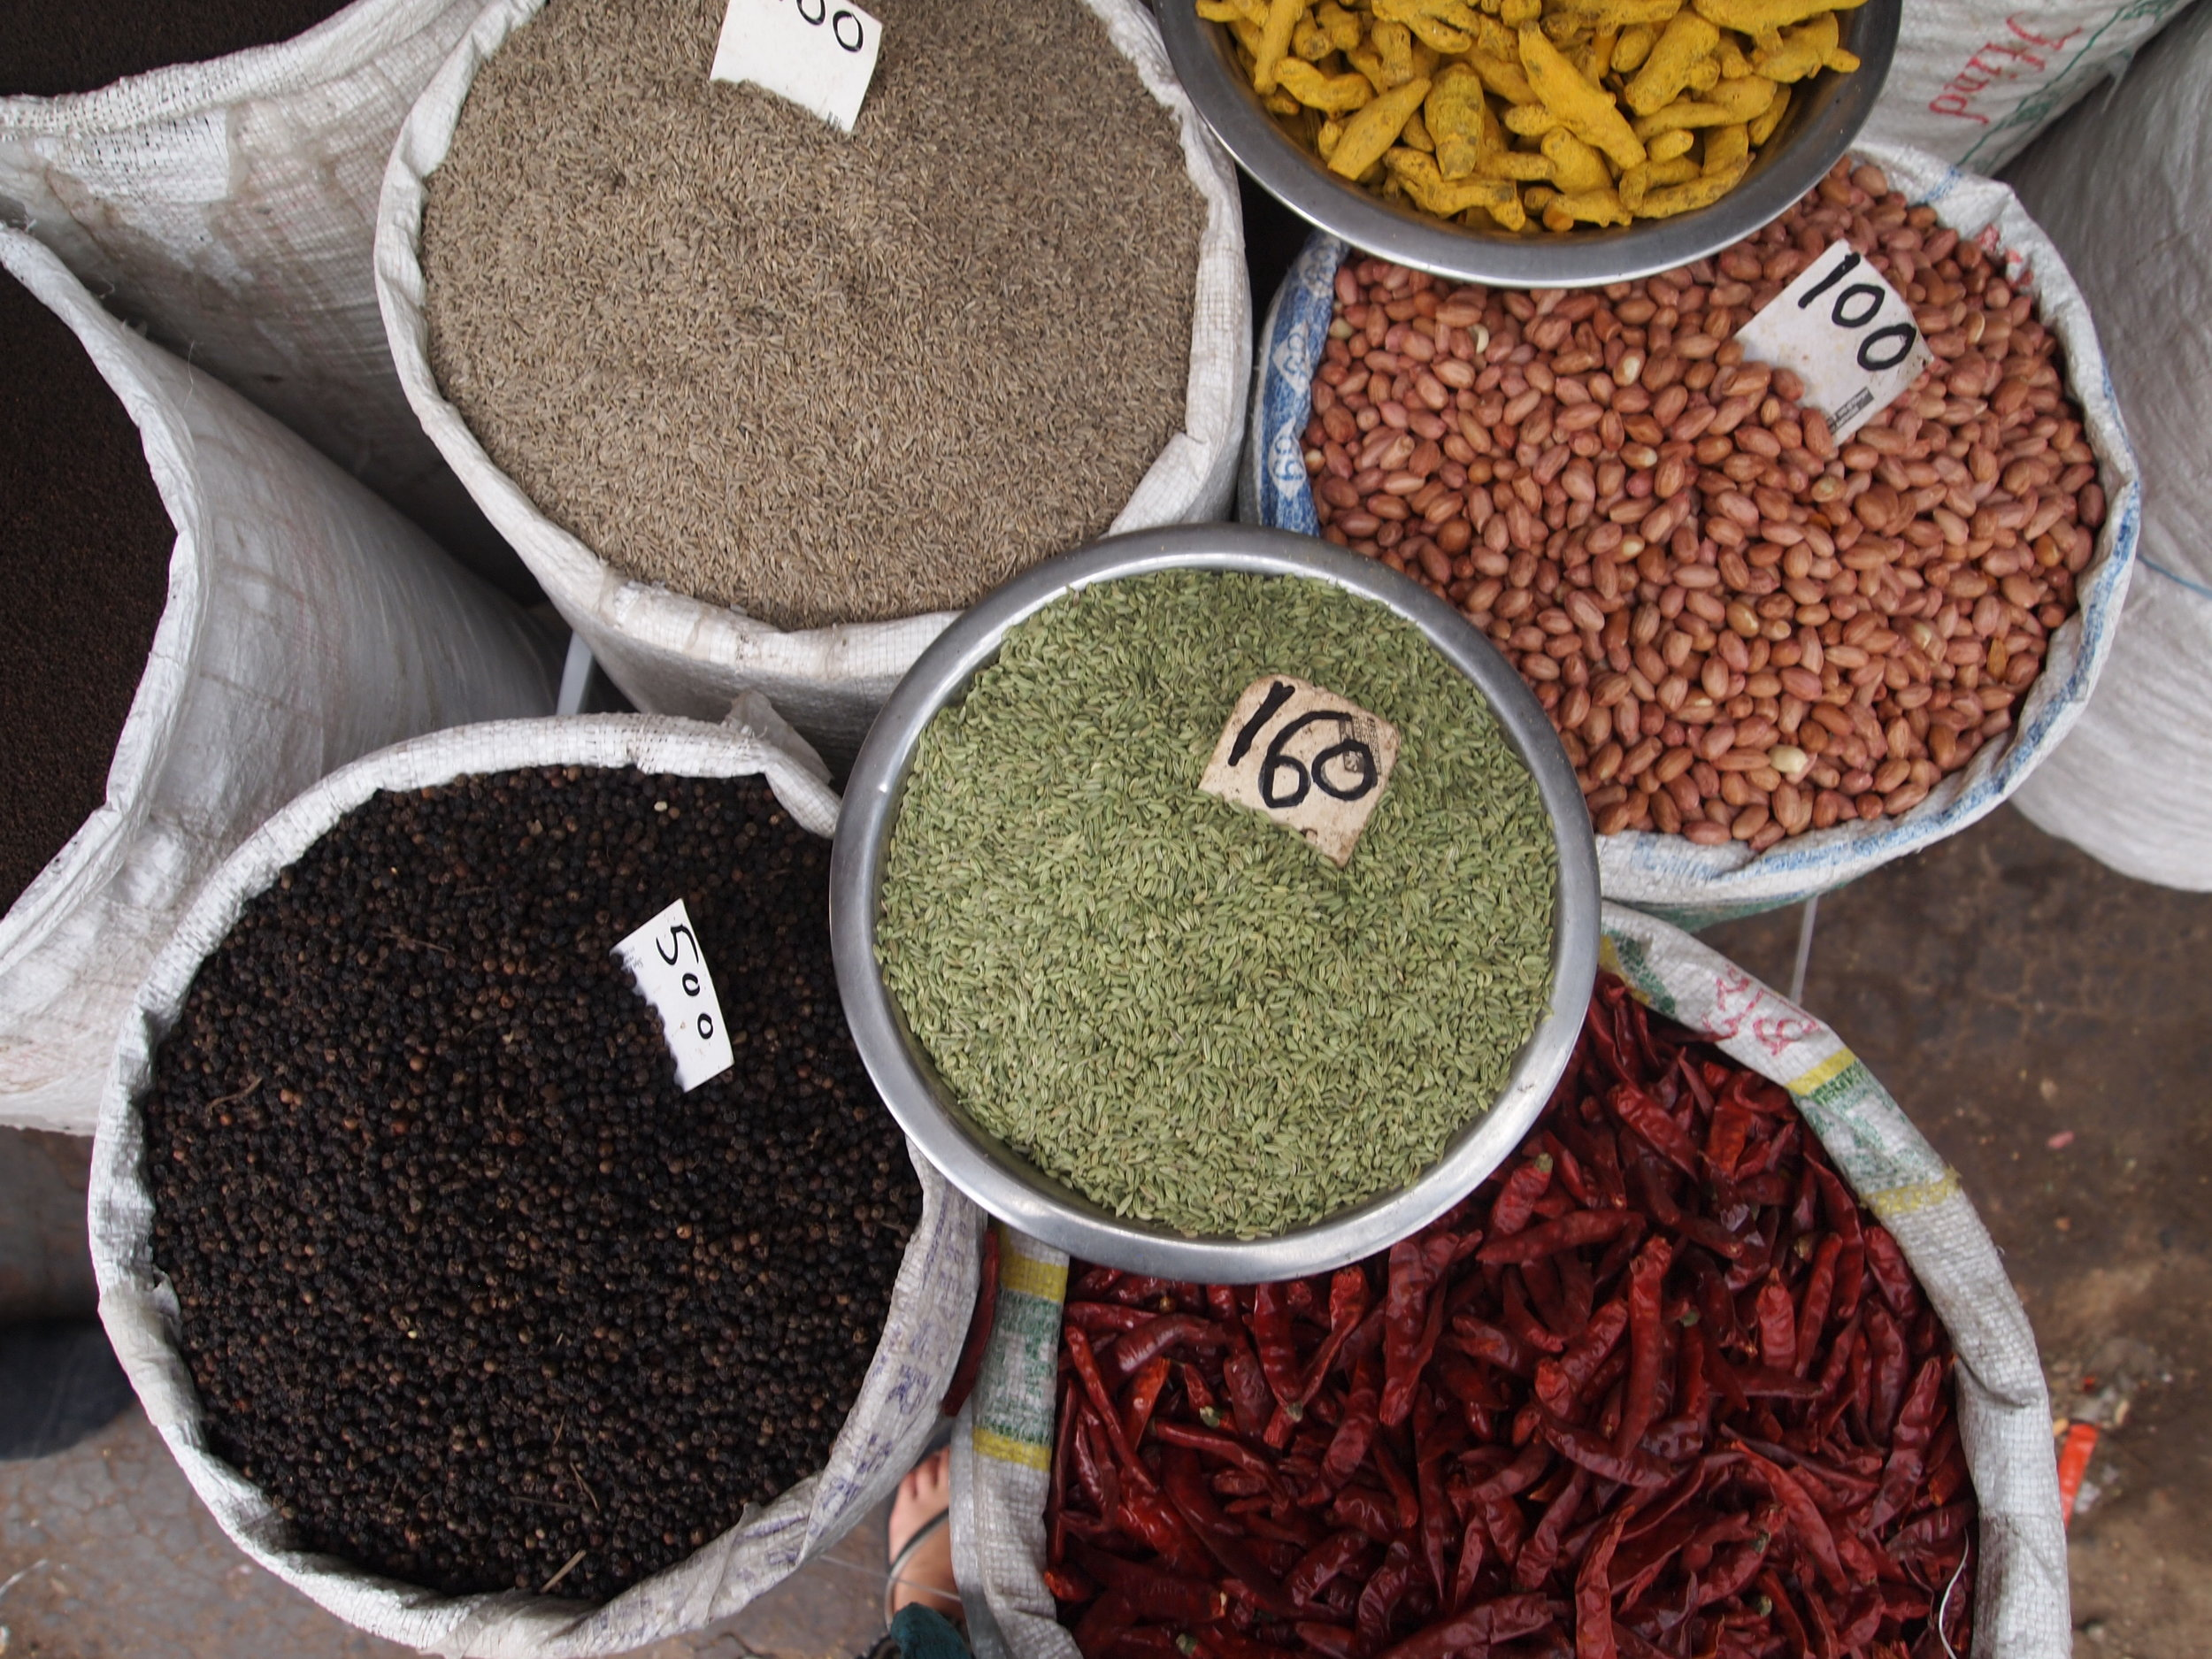 Spices for sale at a market in Mysore, India